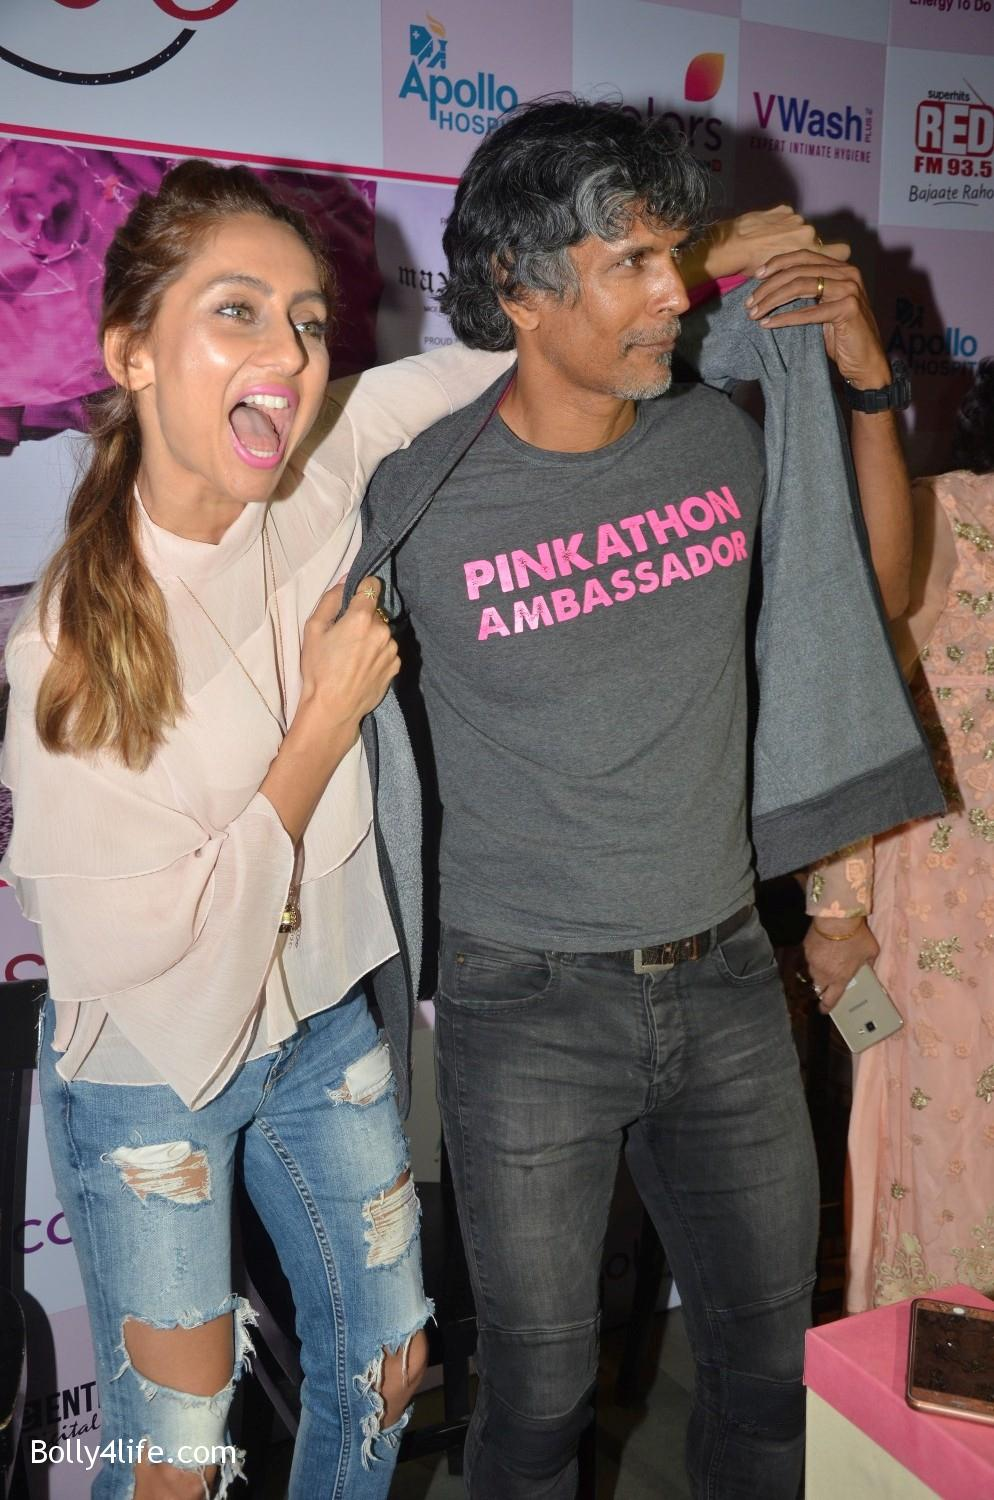 Raj-Nayak-CEO-Colors-RJ-Malishka-Bollywood-actor-Anusha-Dandekar-and-model-Milind-Soman-during-the-announcement-of-Fifth-Edition-of-Pinkathon-5.jpg